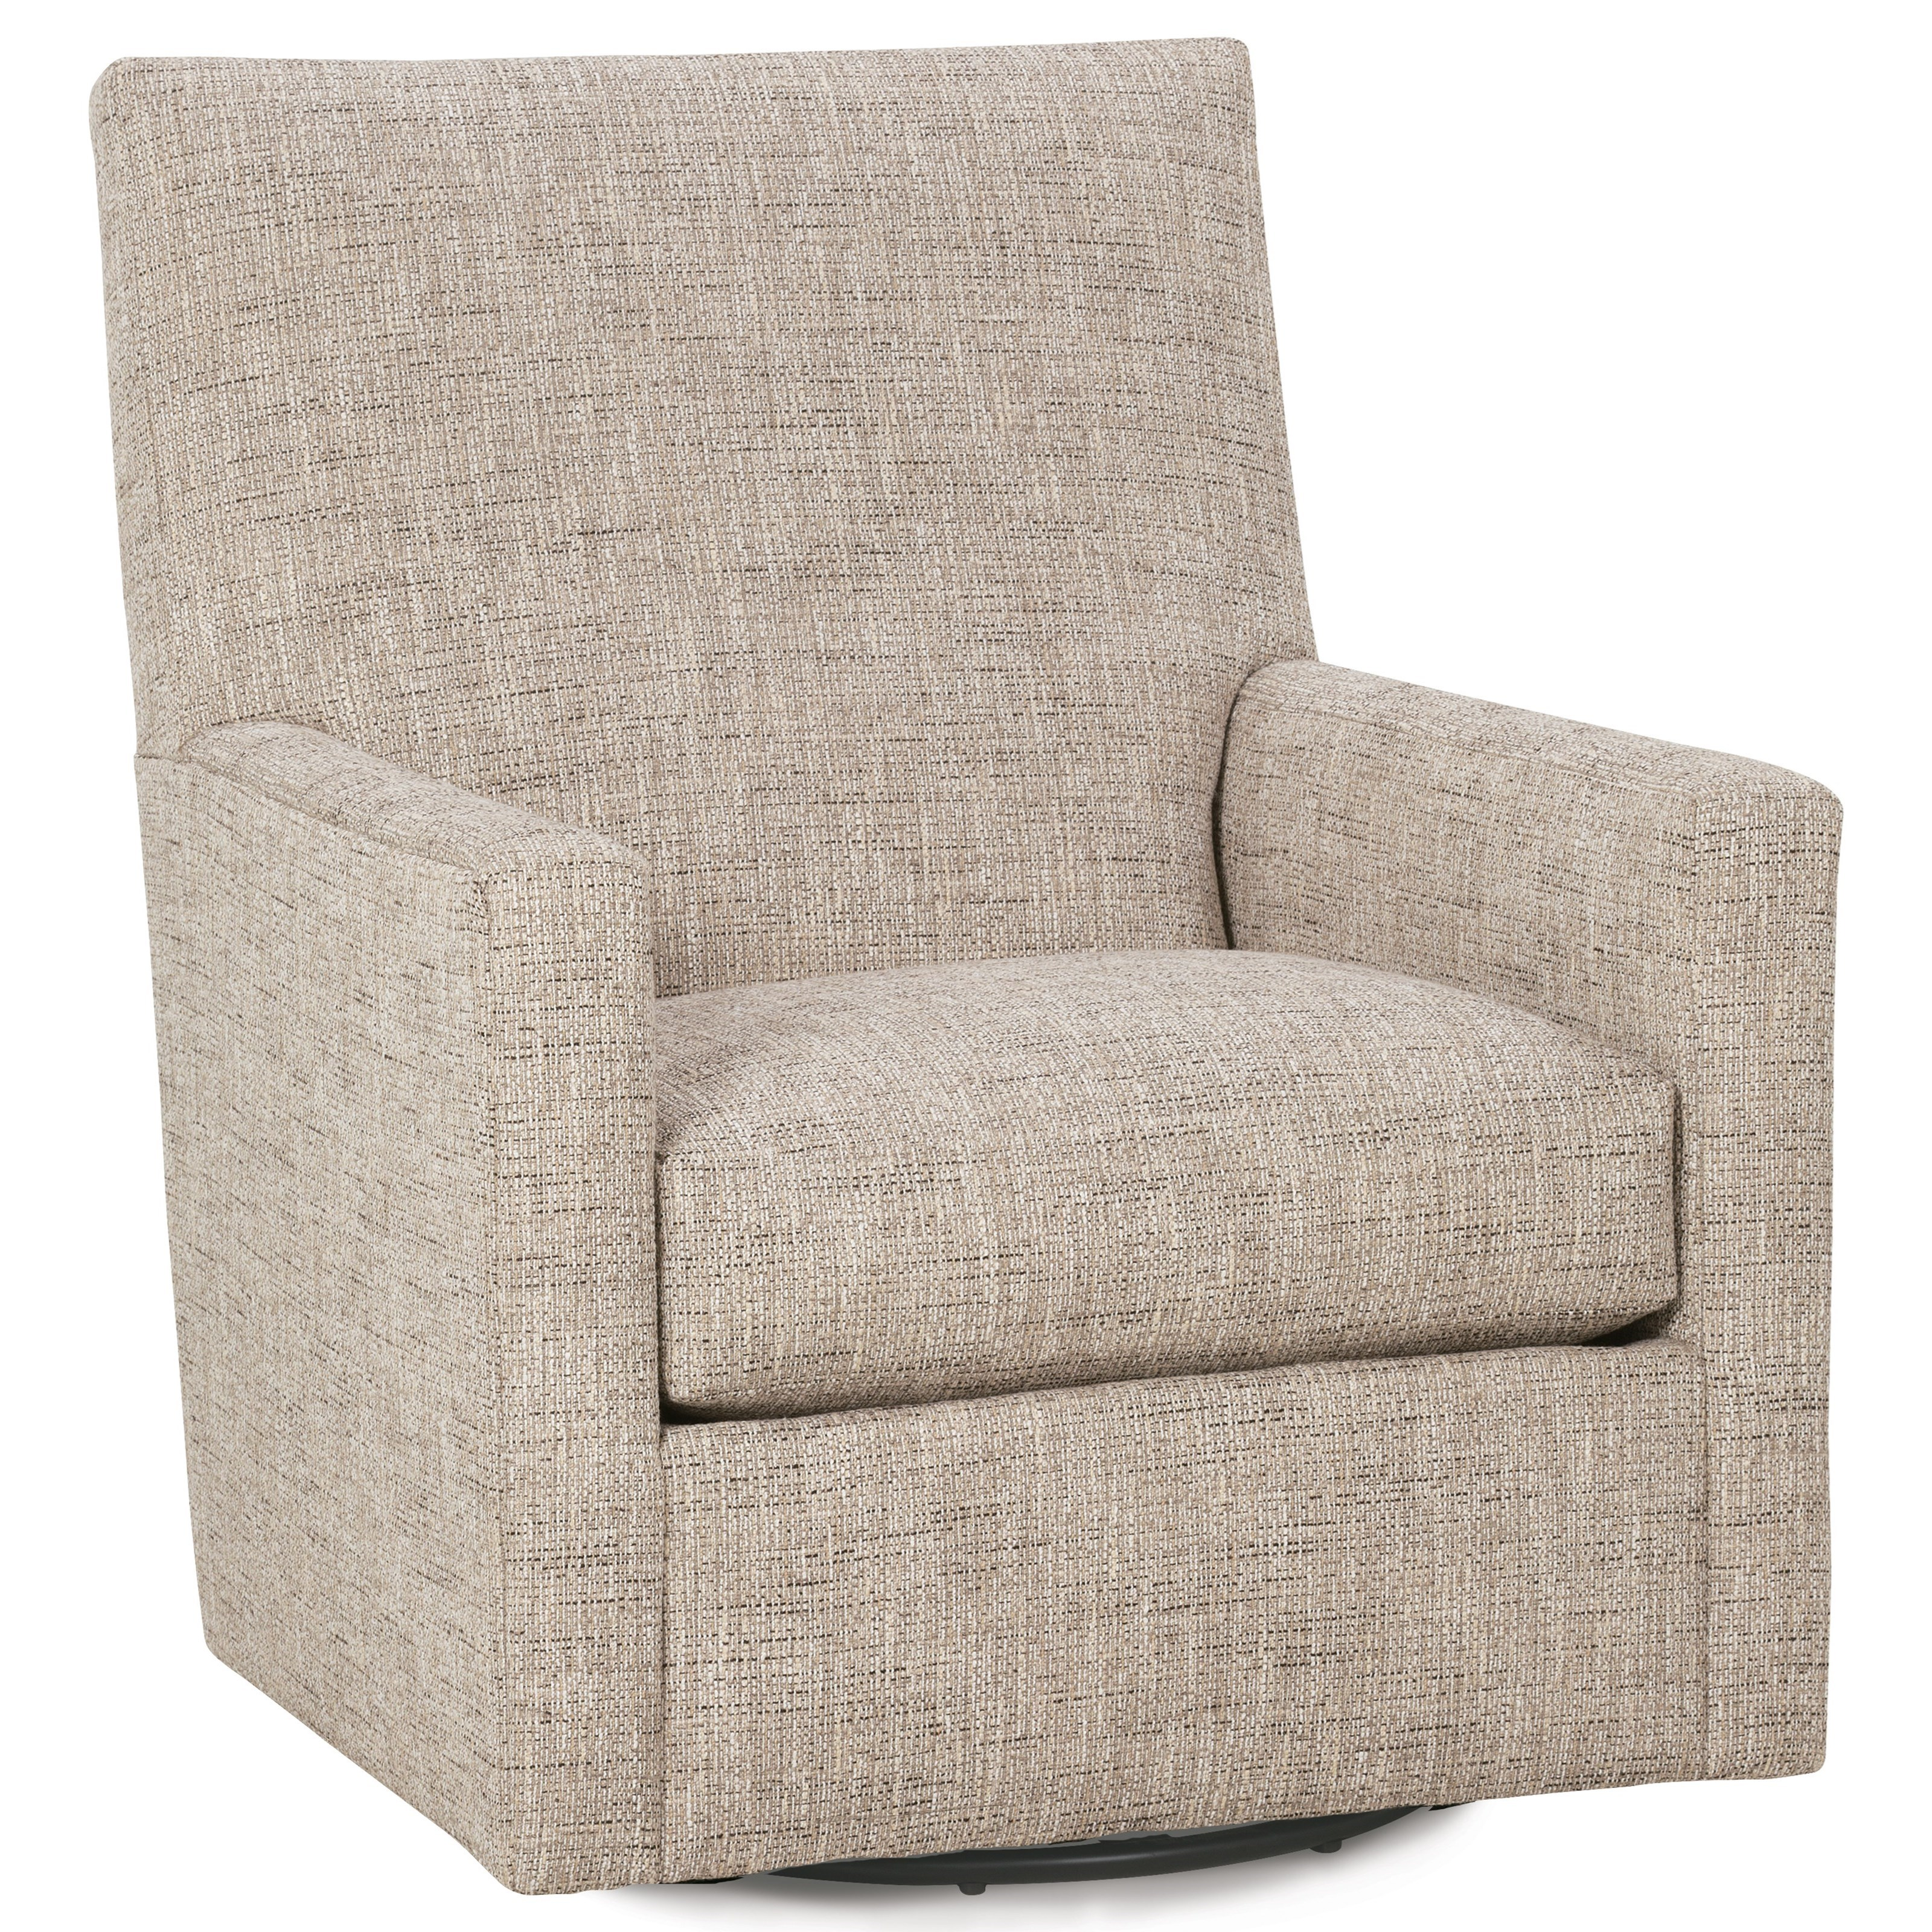 Carlyn Swivel Glider by Rowe at Baer's Furniture